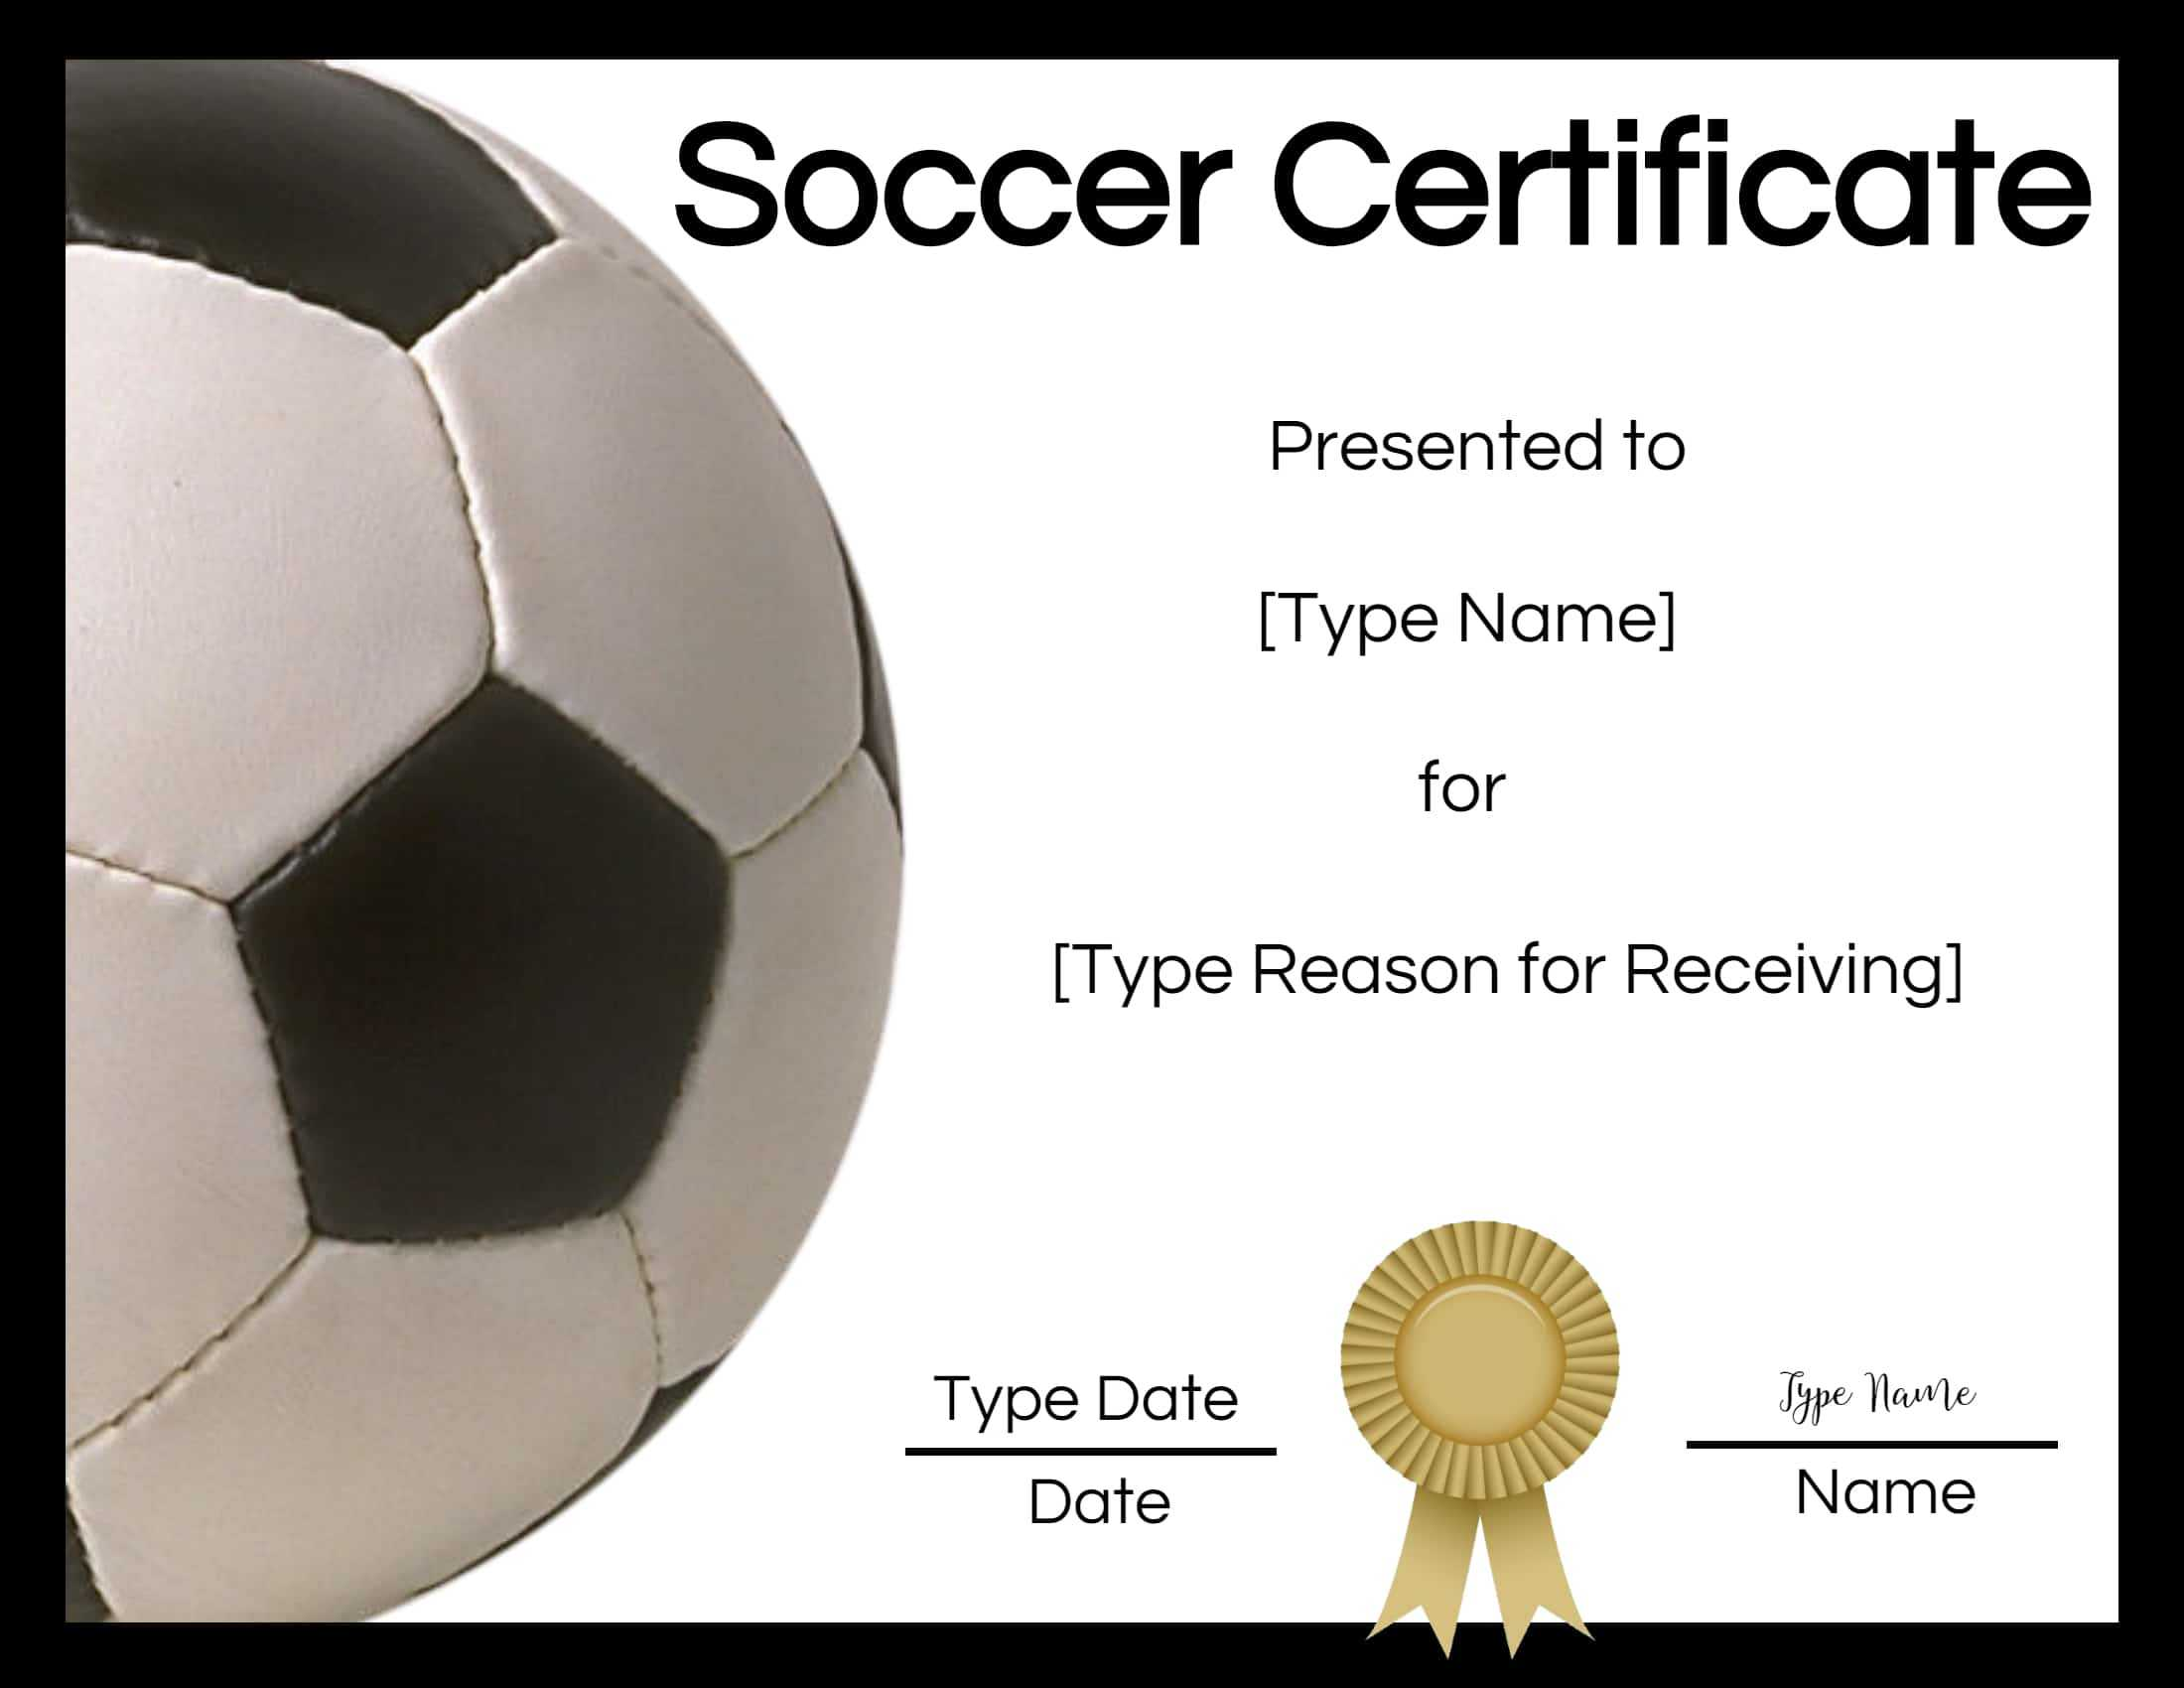 Free Soccer Certificate Maker | Edit Online And Print At Home Within Soccer Certificate Template